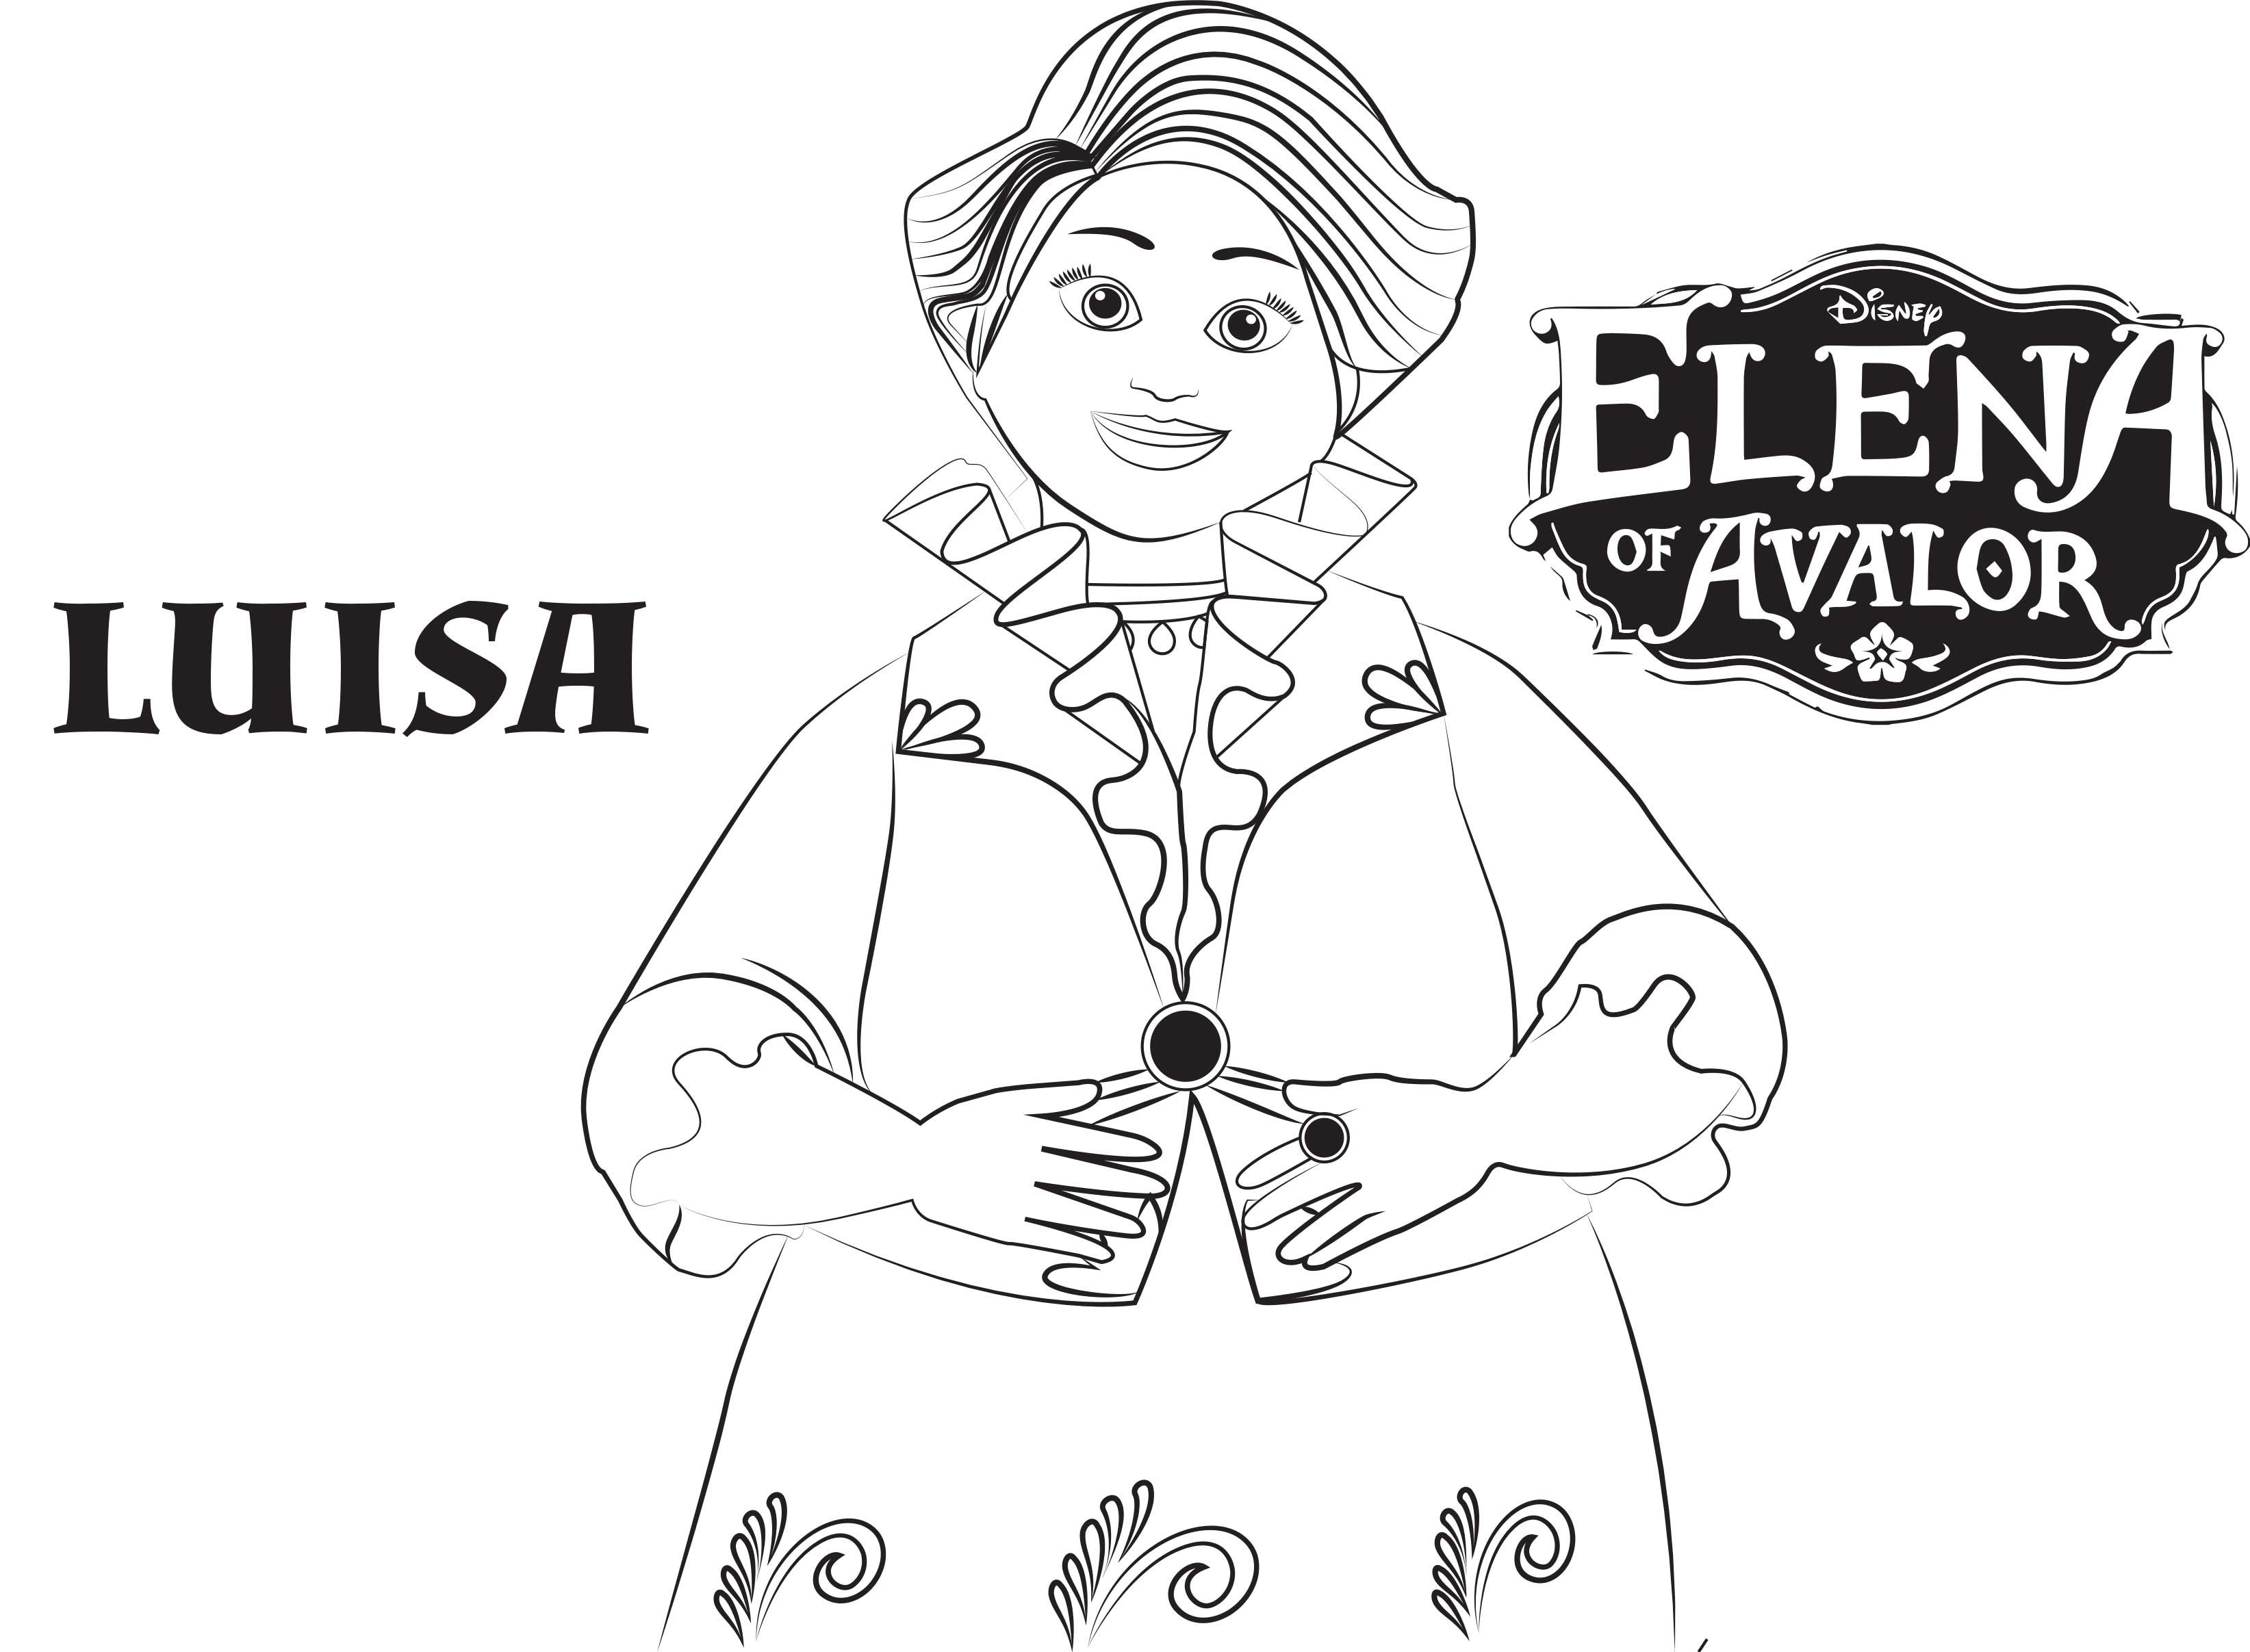 3287x2414 Disney's Elena Of Avalor Coloring Pages Sheet, Free Disney